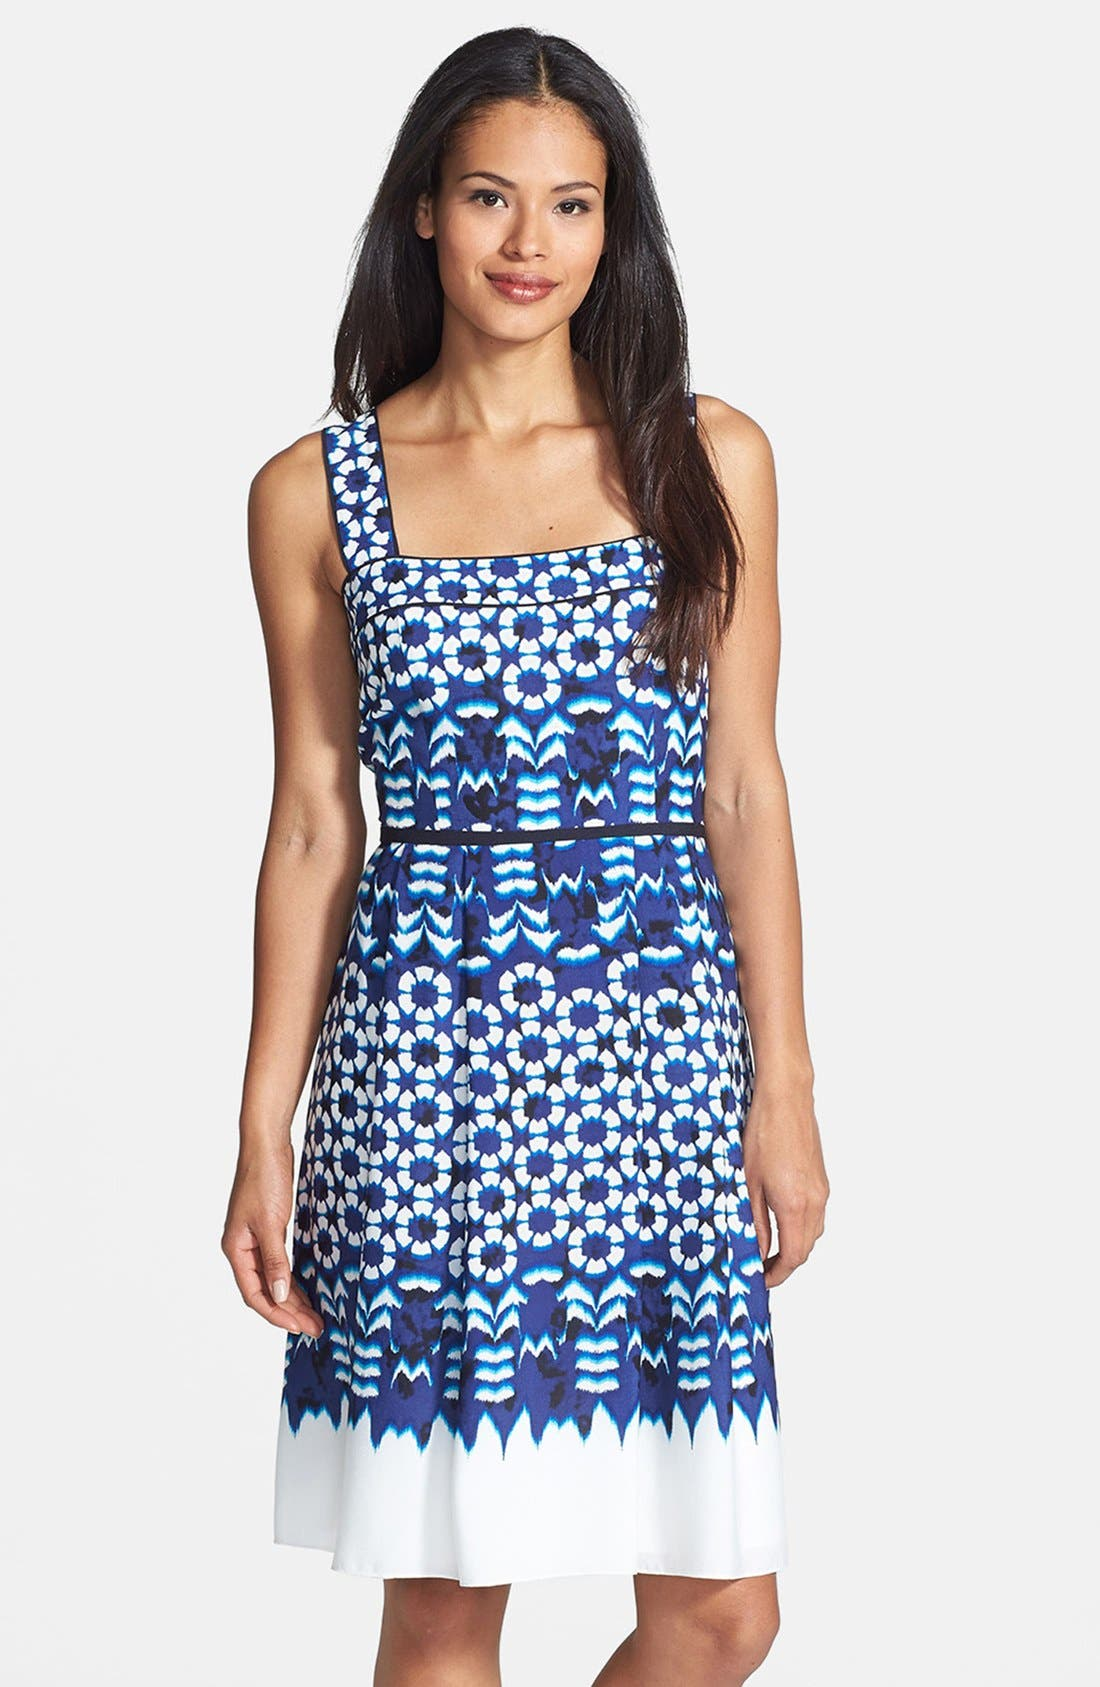 Alternate Image 1 Selected - Adrianna Papell Print Crêpe de Chine Fit & Flare Dress